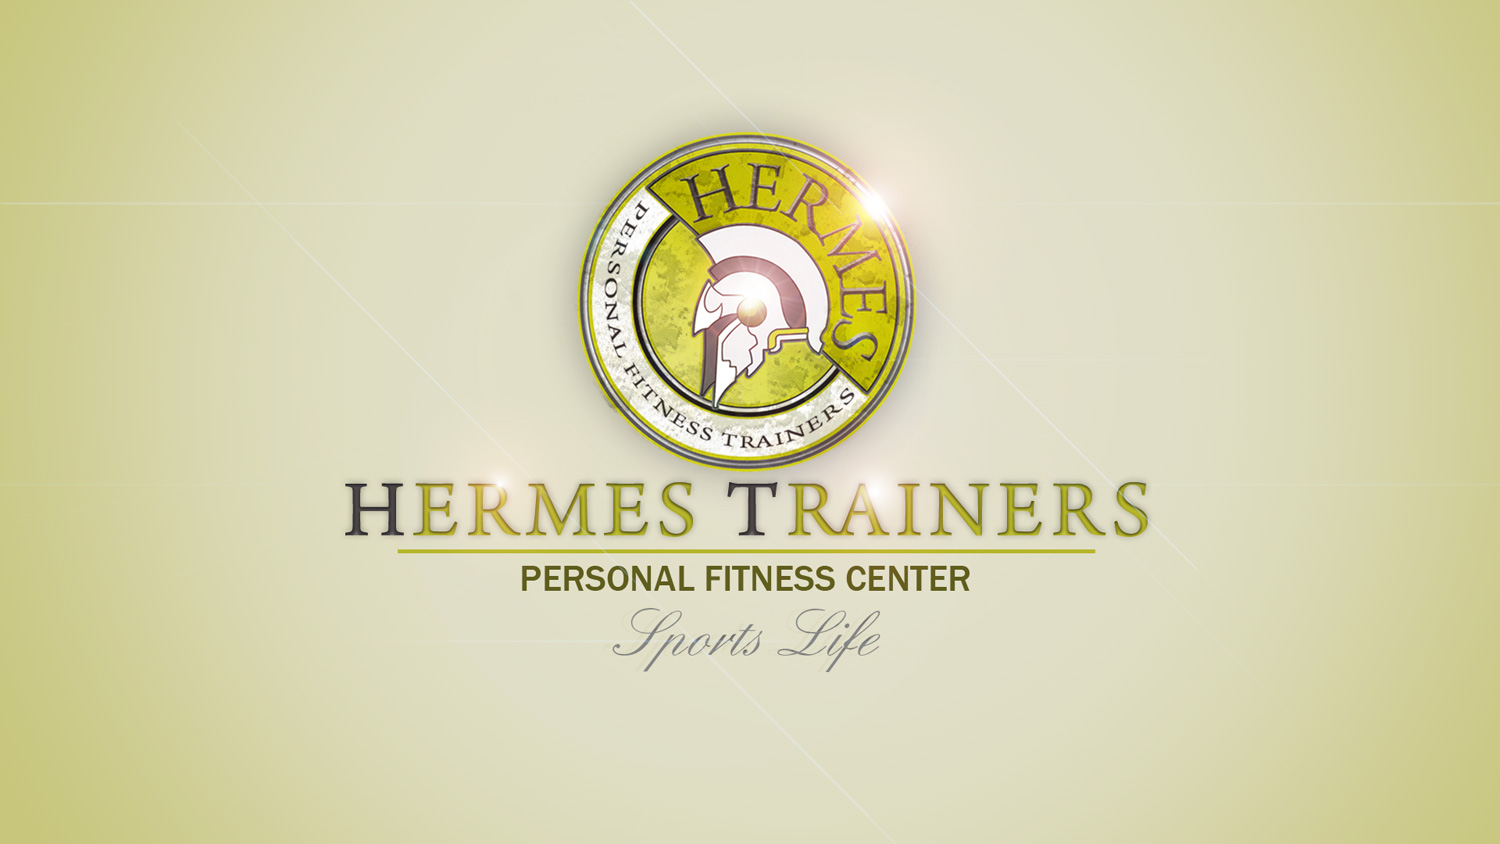 Hermes Trainers